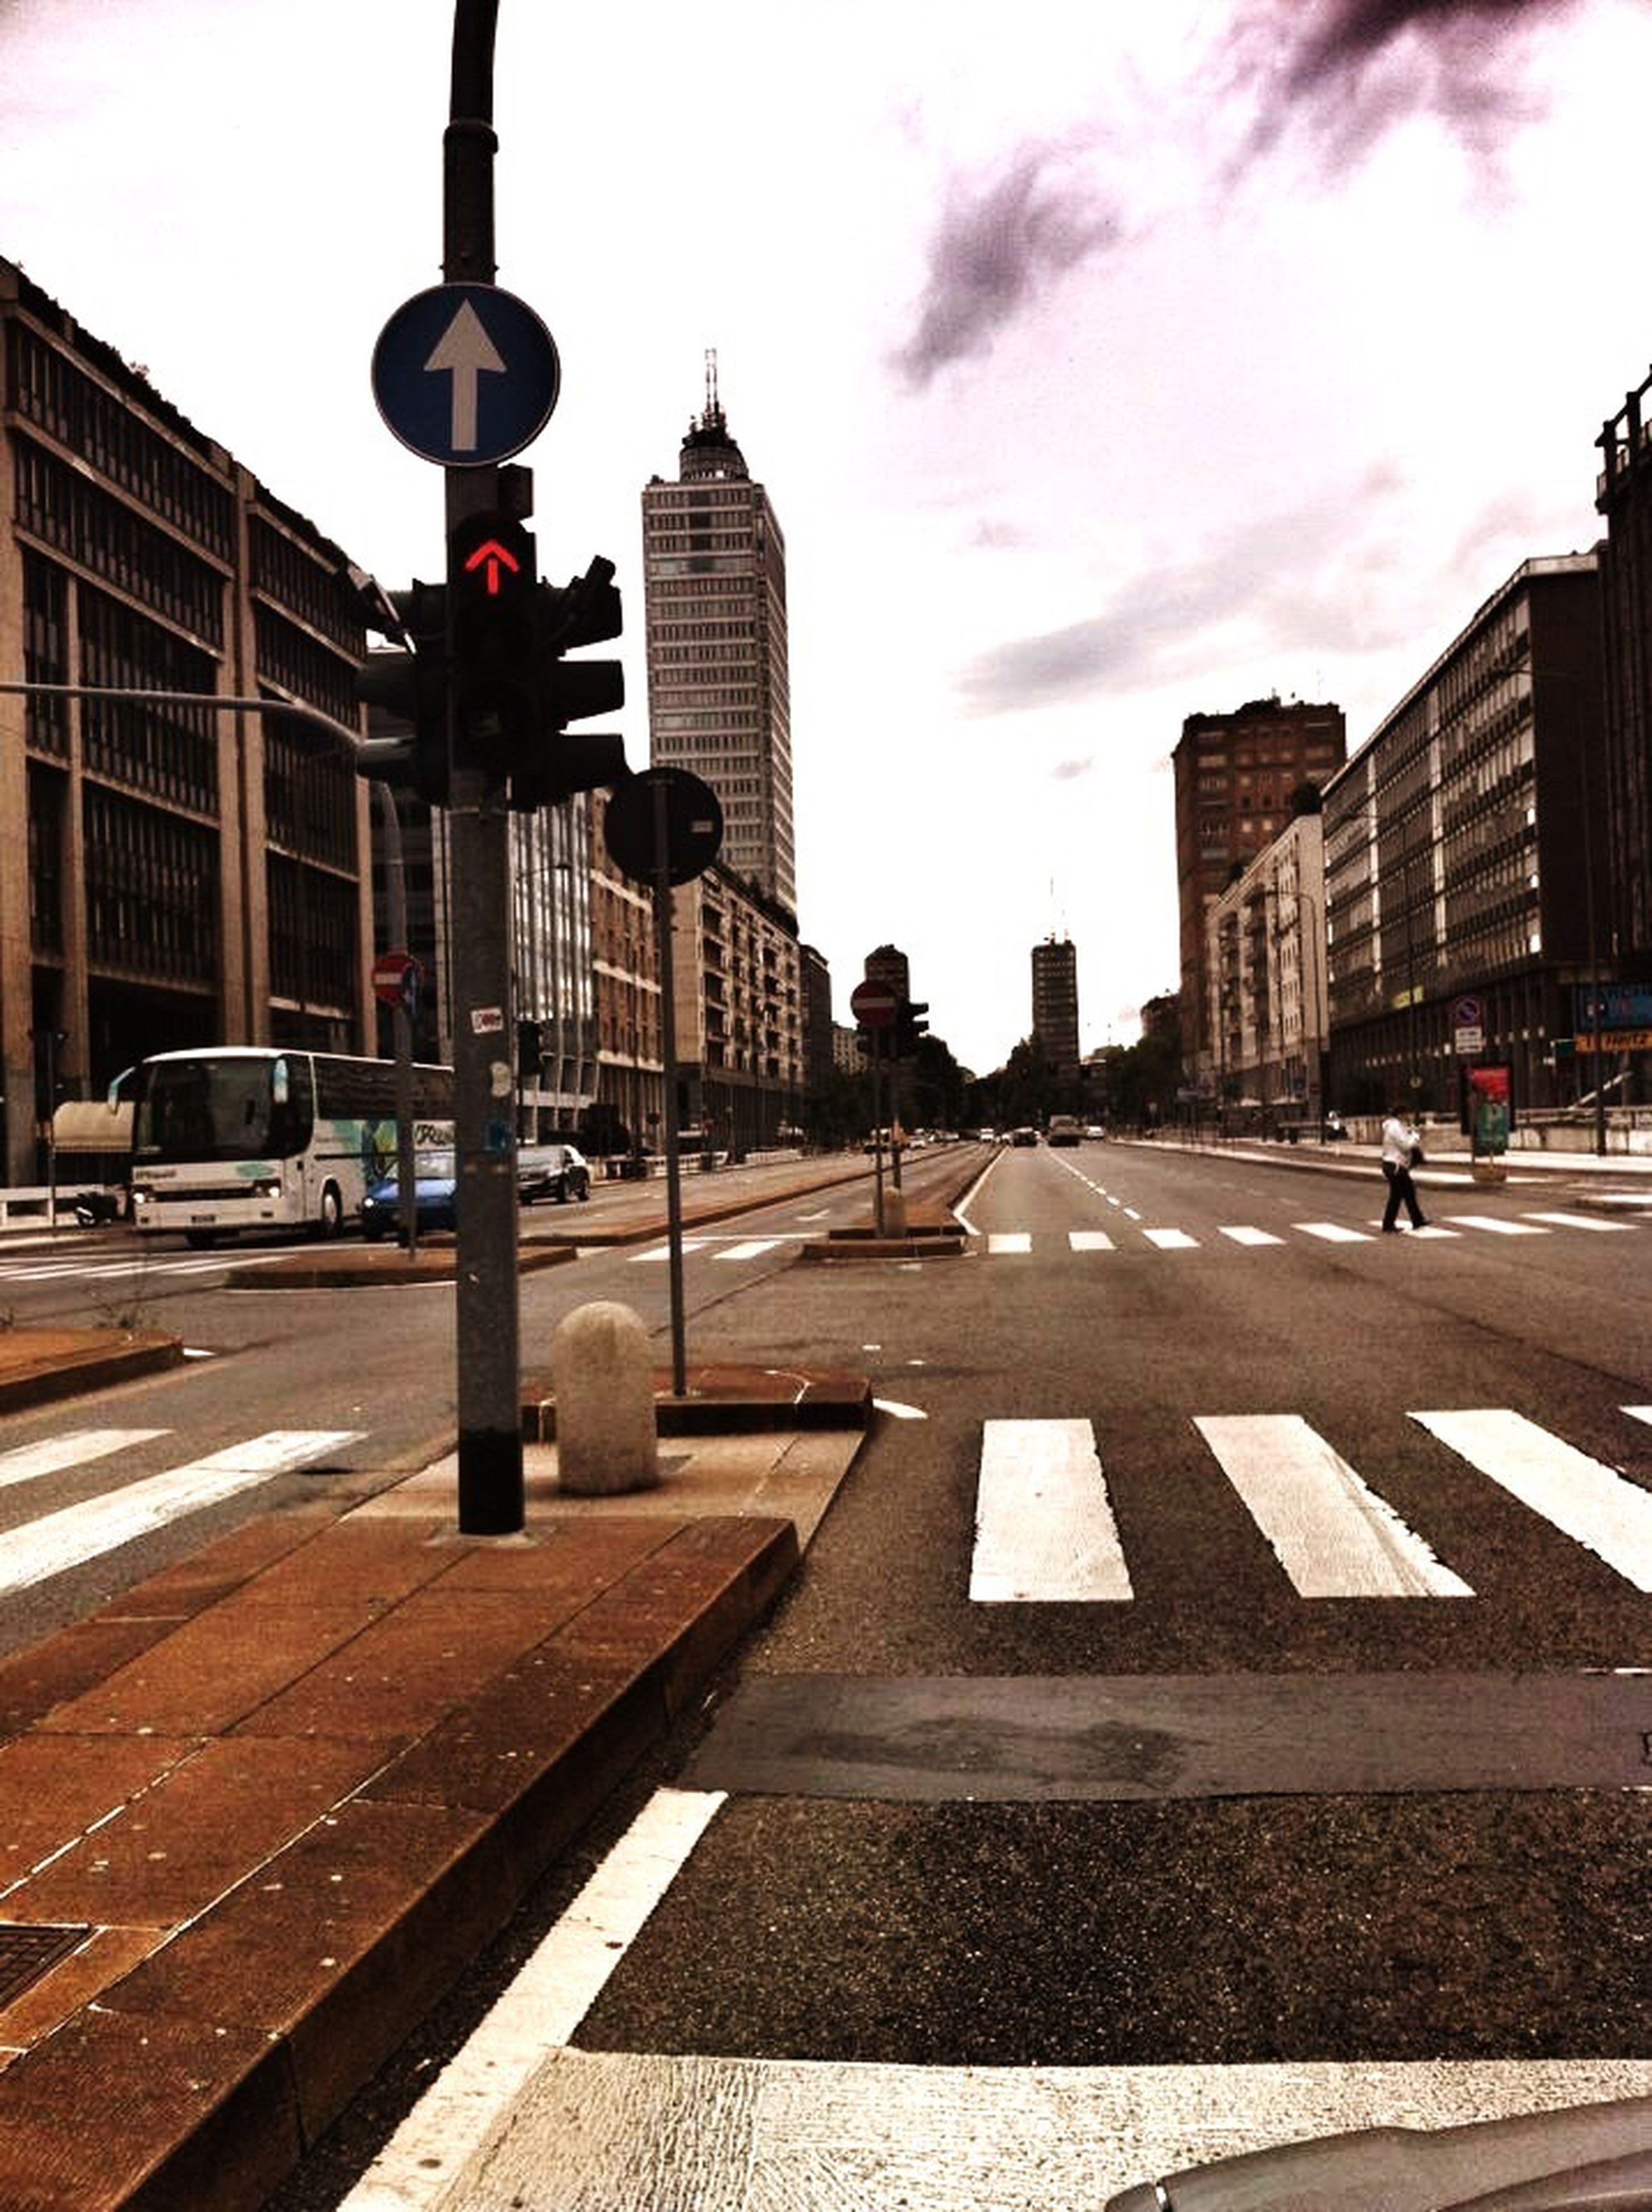 building exterior, architecture, built structure, city, transportation, road marking, street, road, the way forward, arrow symbol, road sign, guidance, sky, car, city life, city street, communication, diminishing perspective, asphalt, incidental people